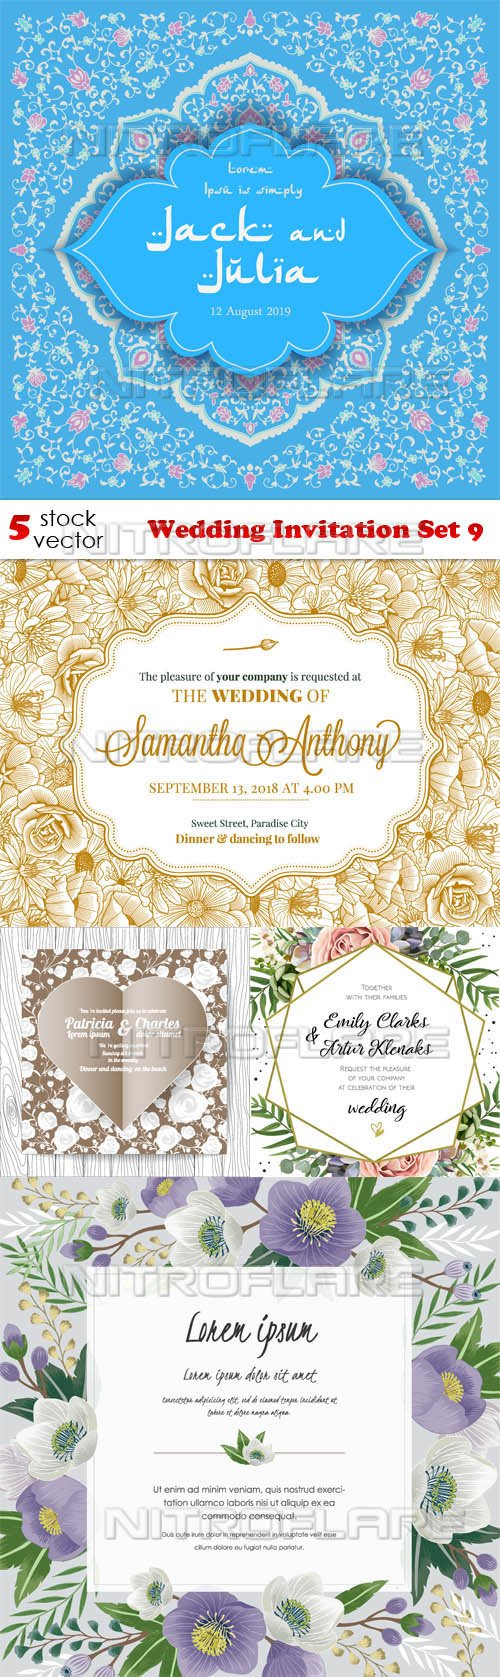 Vectors - Wedding Invitation Set 9